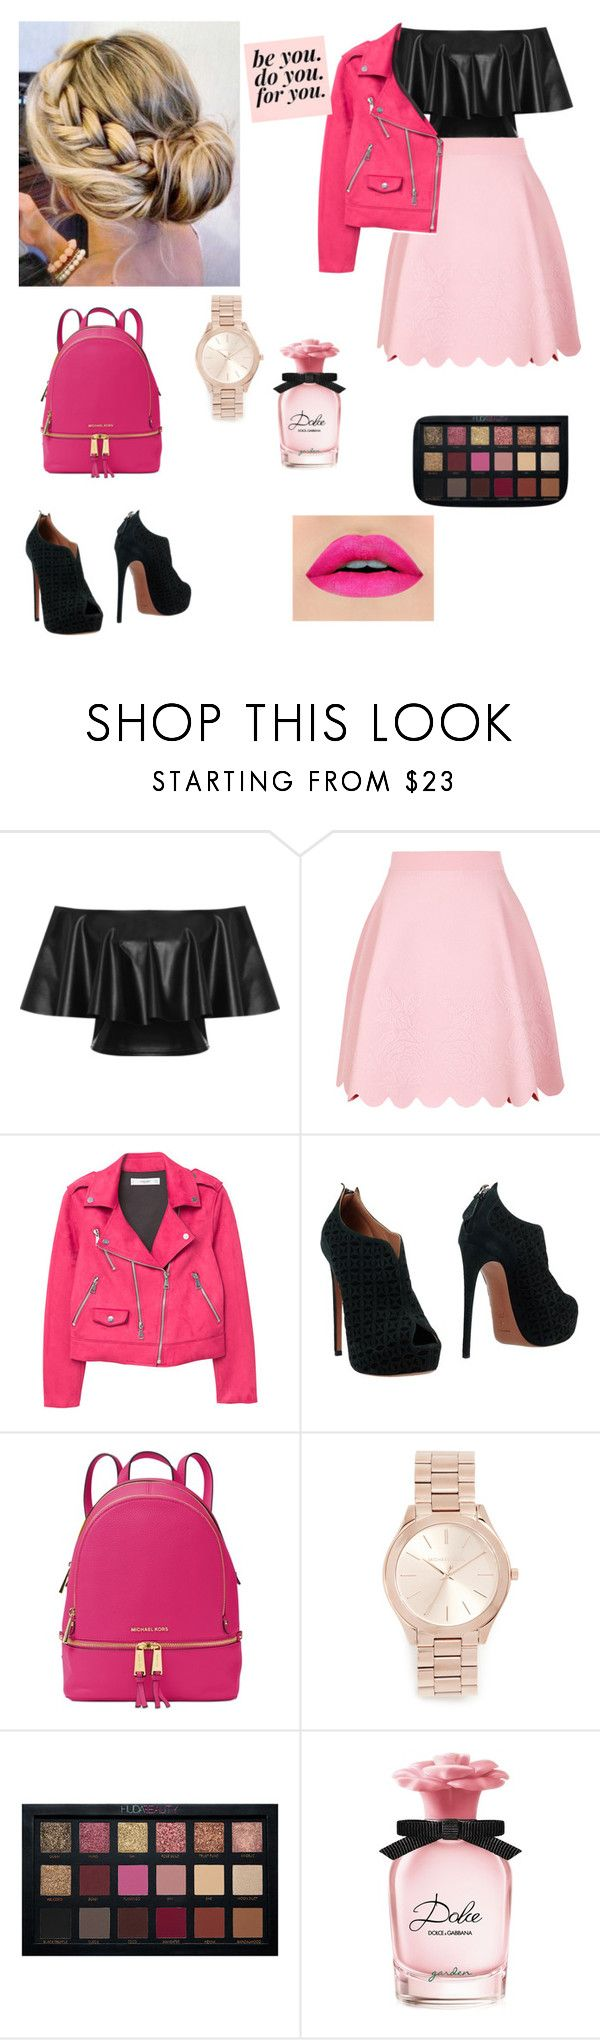 """Pink Ladies- Grease"" by shigleason ❤ liked on Polyvore featuring WearAll, Alexander McQueen, MANGO, Alaïa, Michael Kors and Dolce&Gabbana"